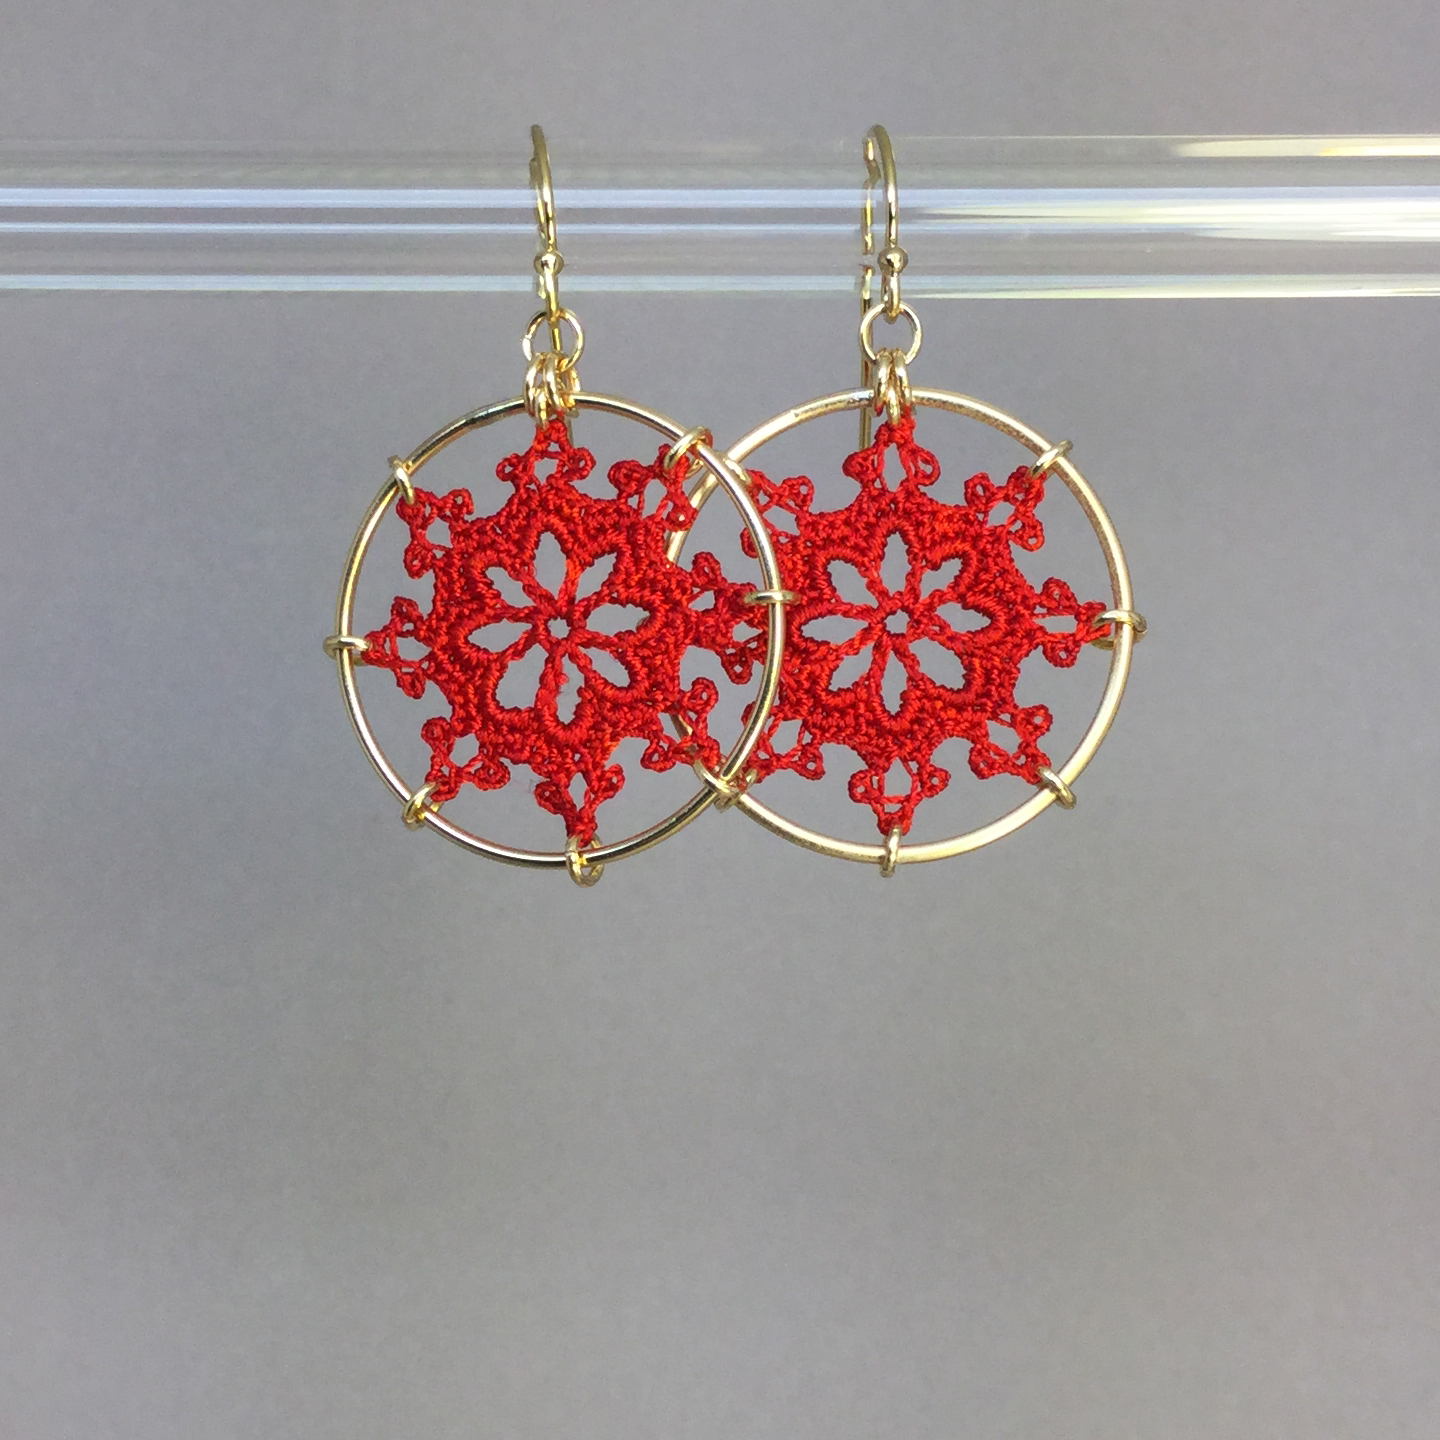 Nautical earrings, gold, red thread